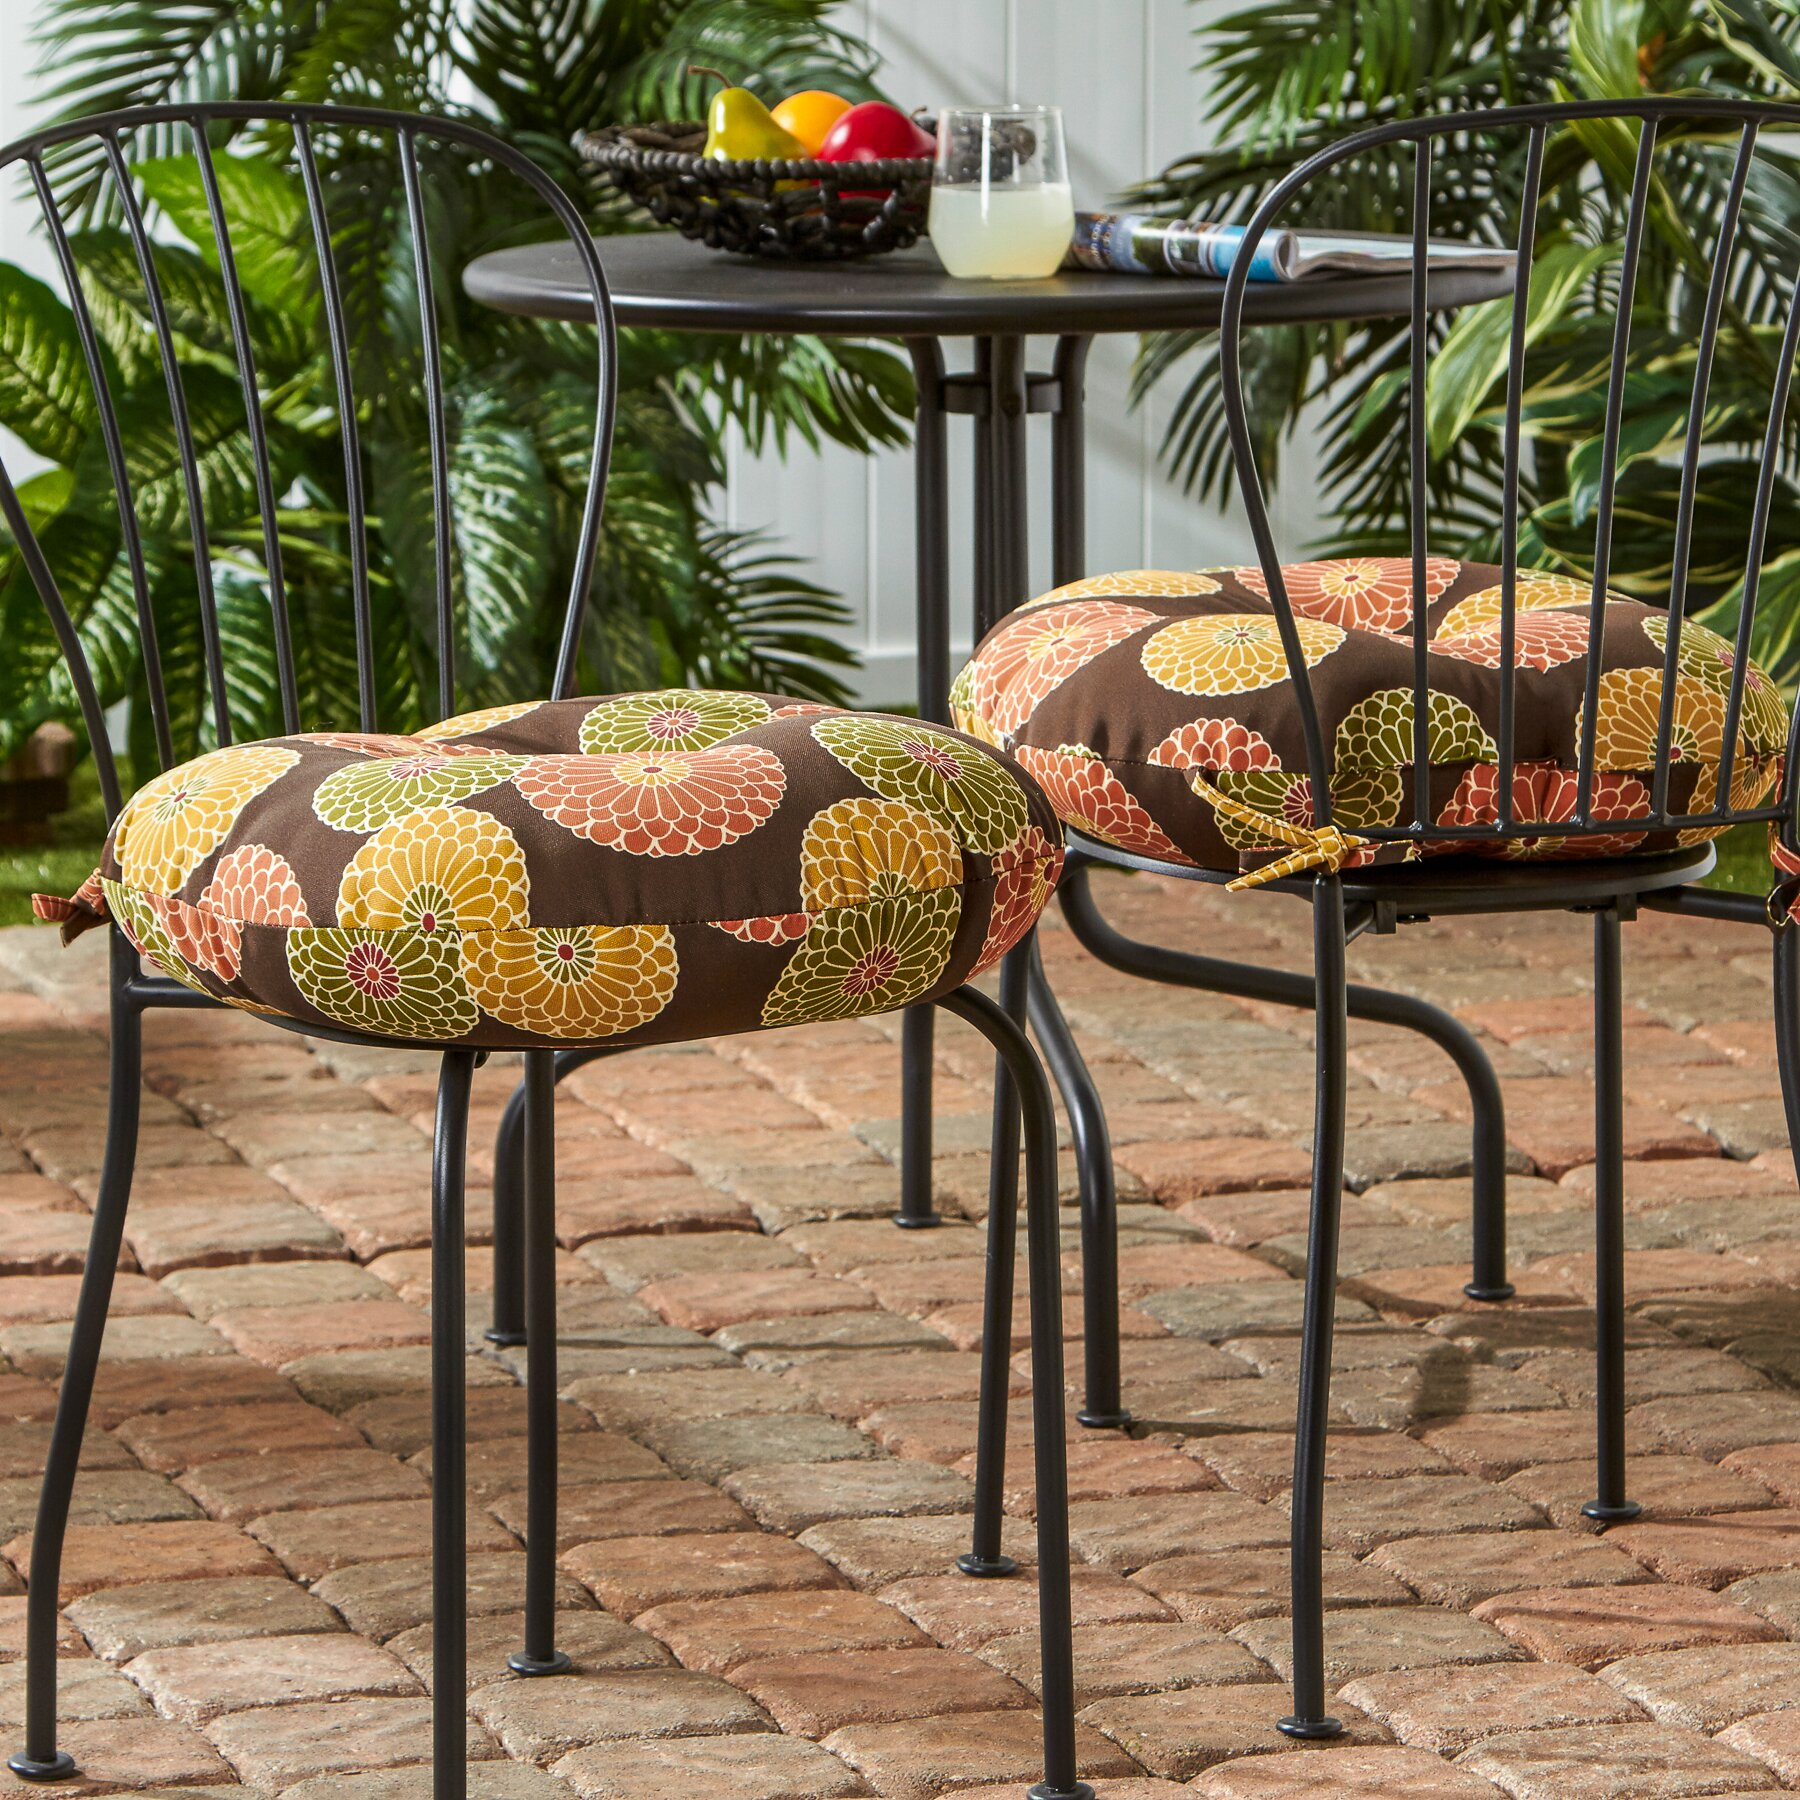 Outdoor dining chair cushions - Outdoor Dining Chair Cushion